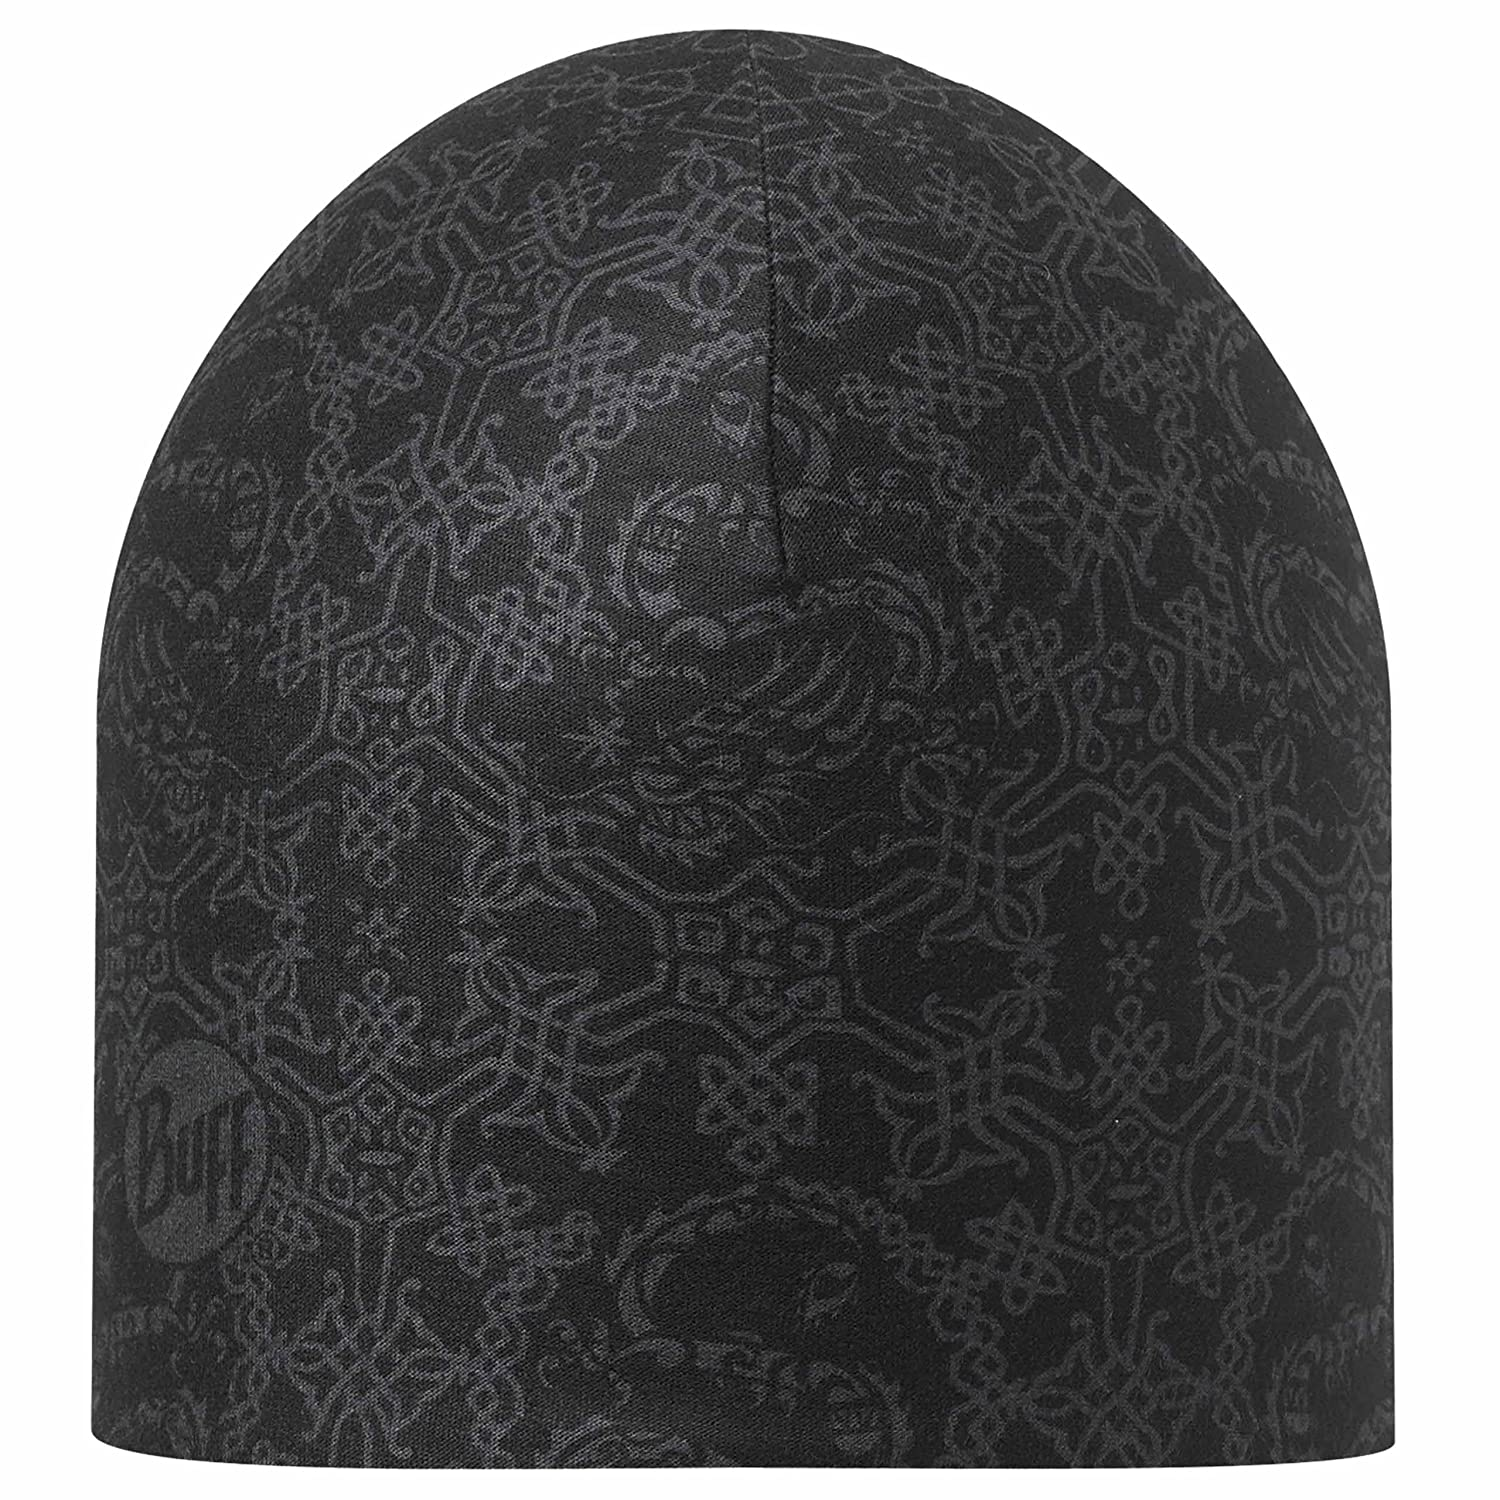 Original Buff Xoui Graphite Black - Reversible Coolmax Hat Unisex, Color Negro 11151390110